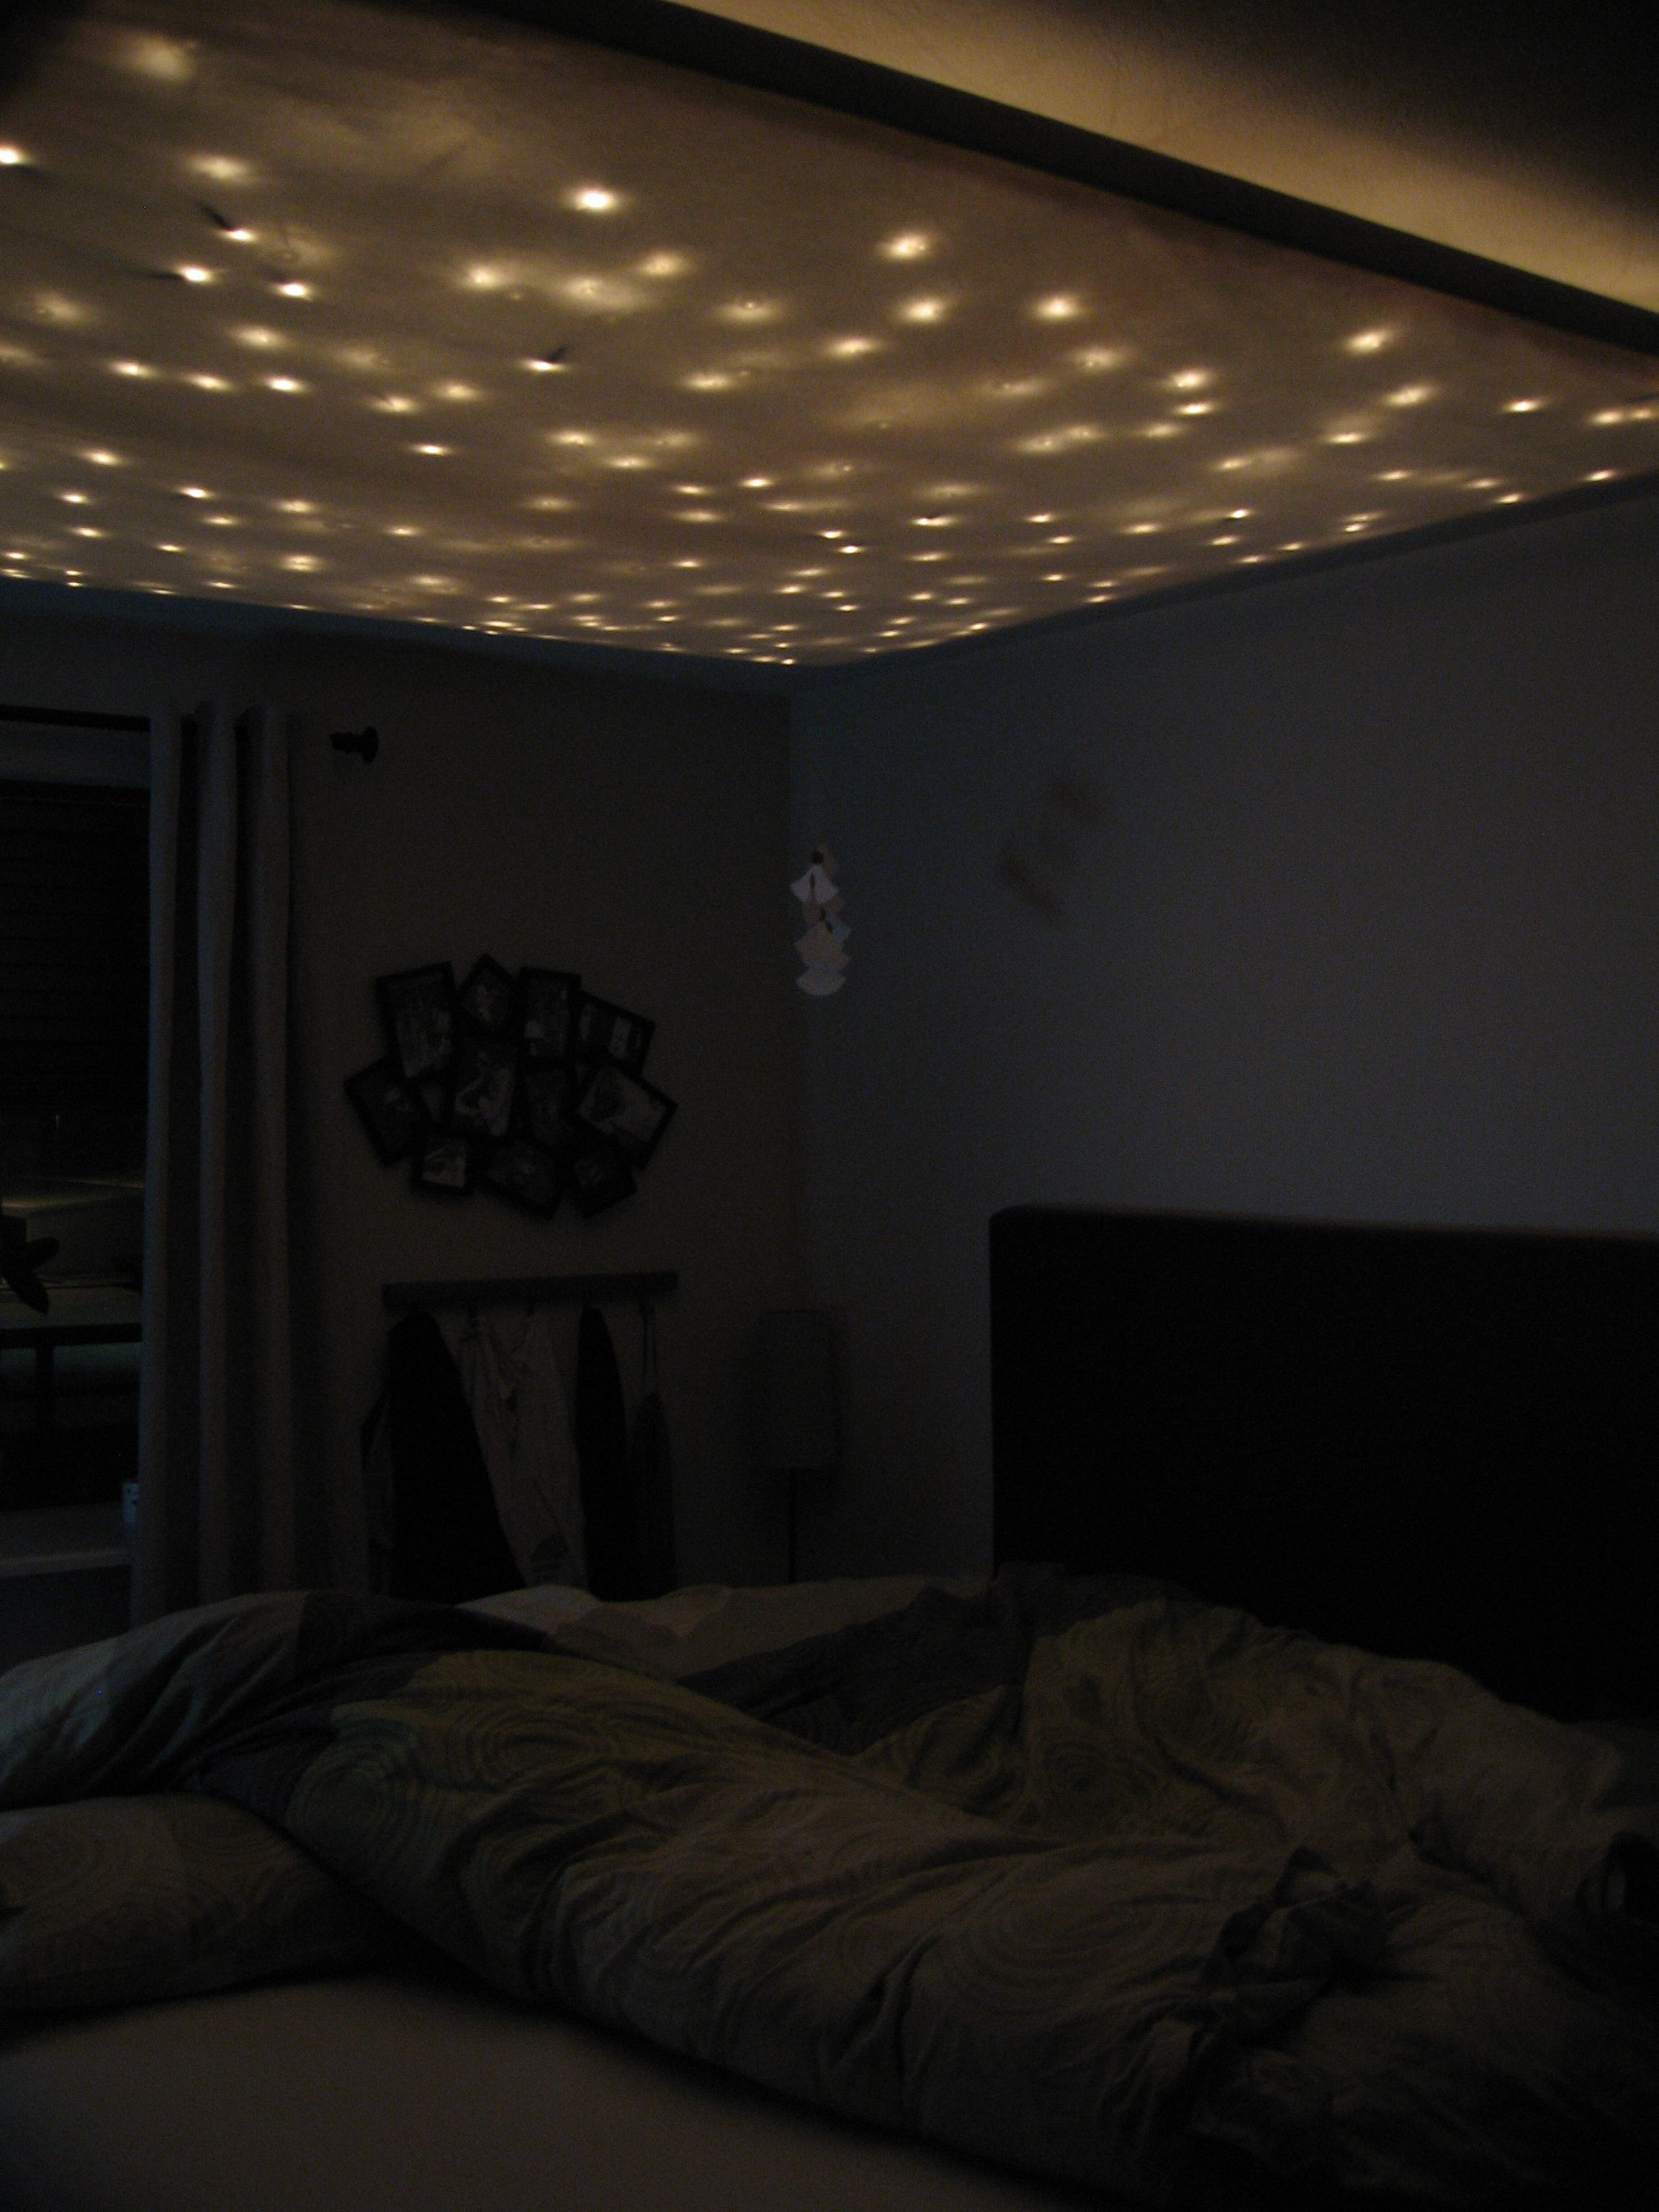 Cool Chandeliers For Bedroom The Most Awesome Images On The Internet Xmas Lights